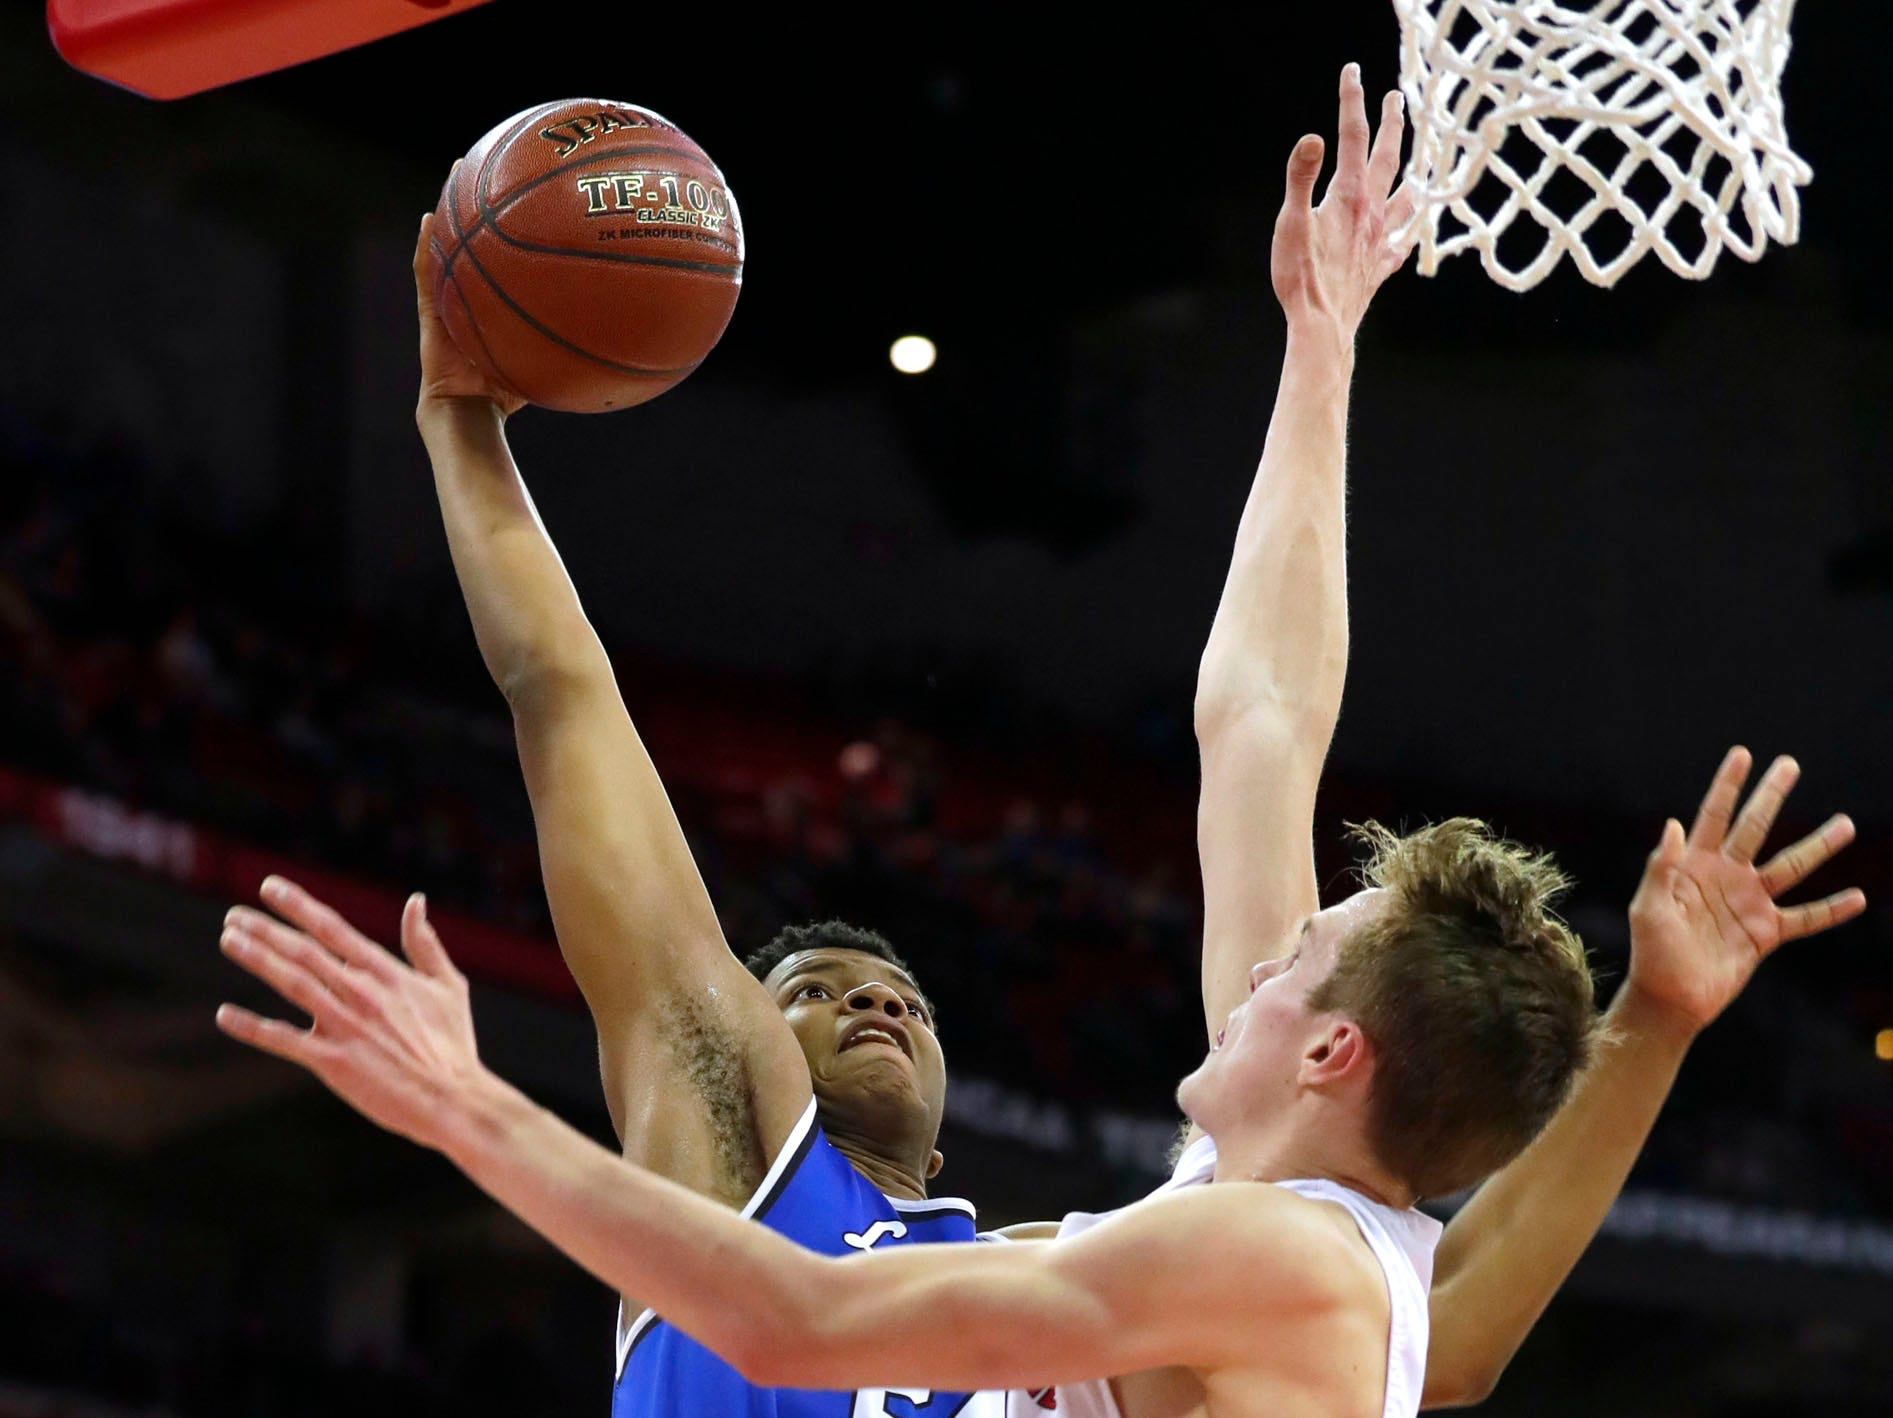 Brookfield Central's David Joplin drives to the basket against Sun Prairie's Brock Voigt during the Division 1 championship game at the WIAA boys basketball state tournament in Madison on Saturday, March 16, 2019.